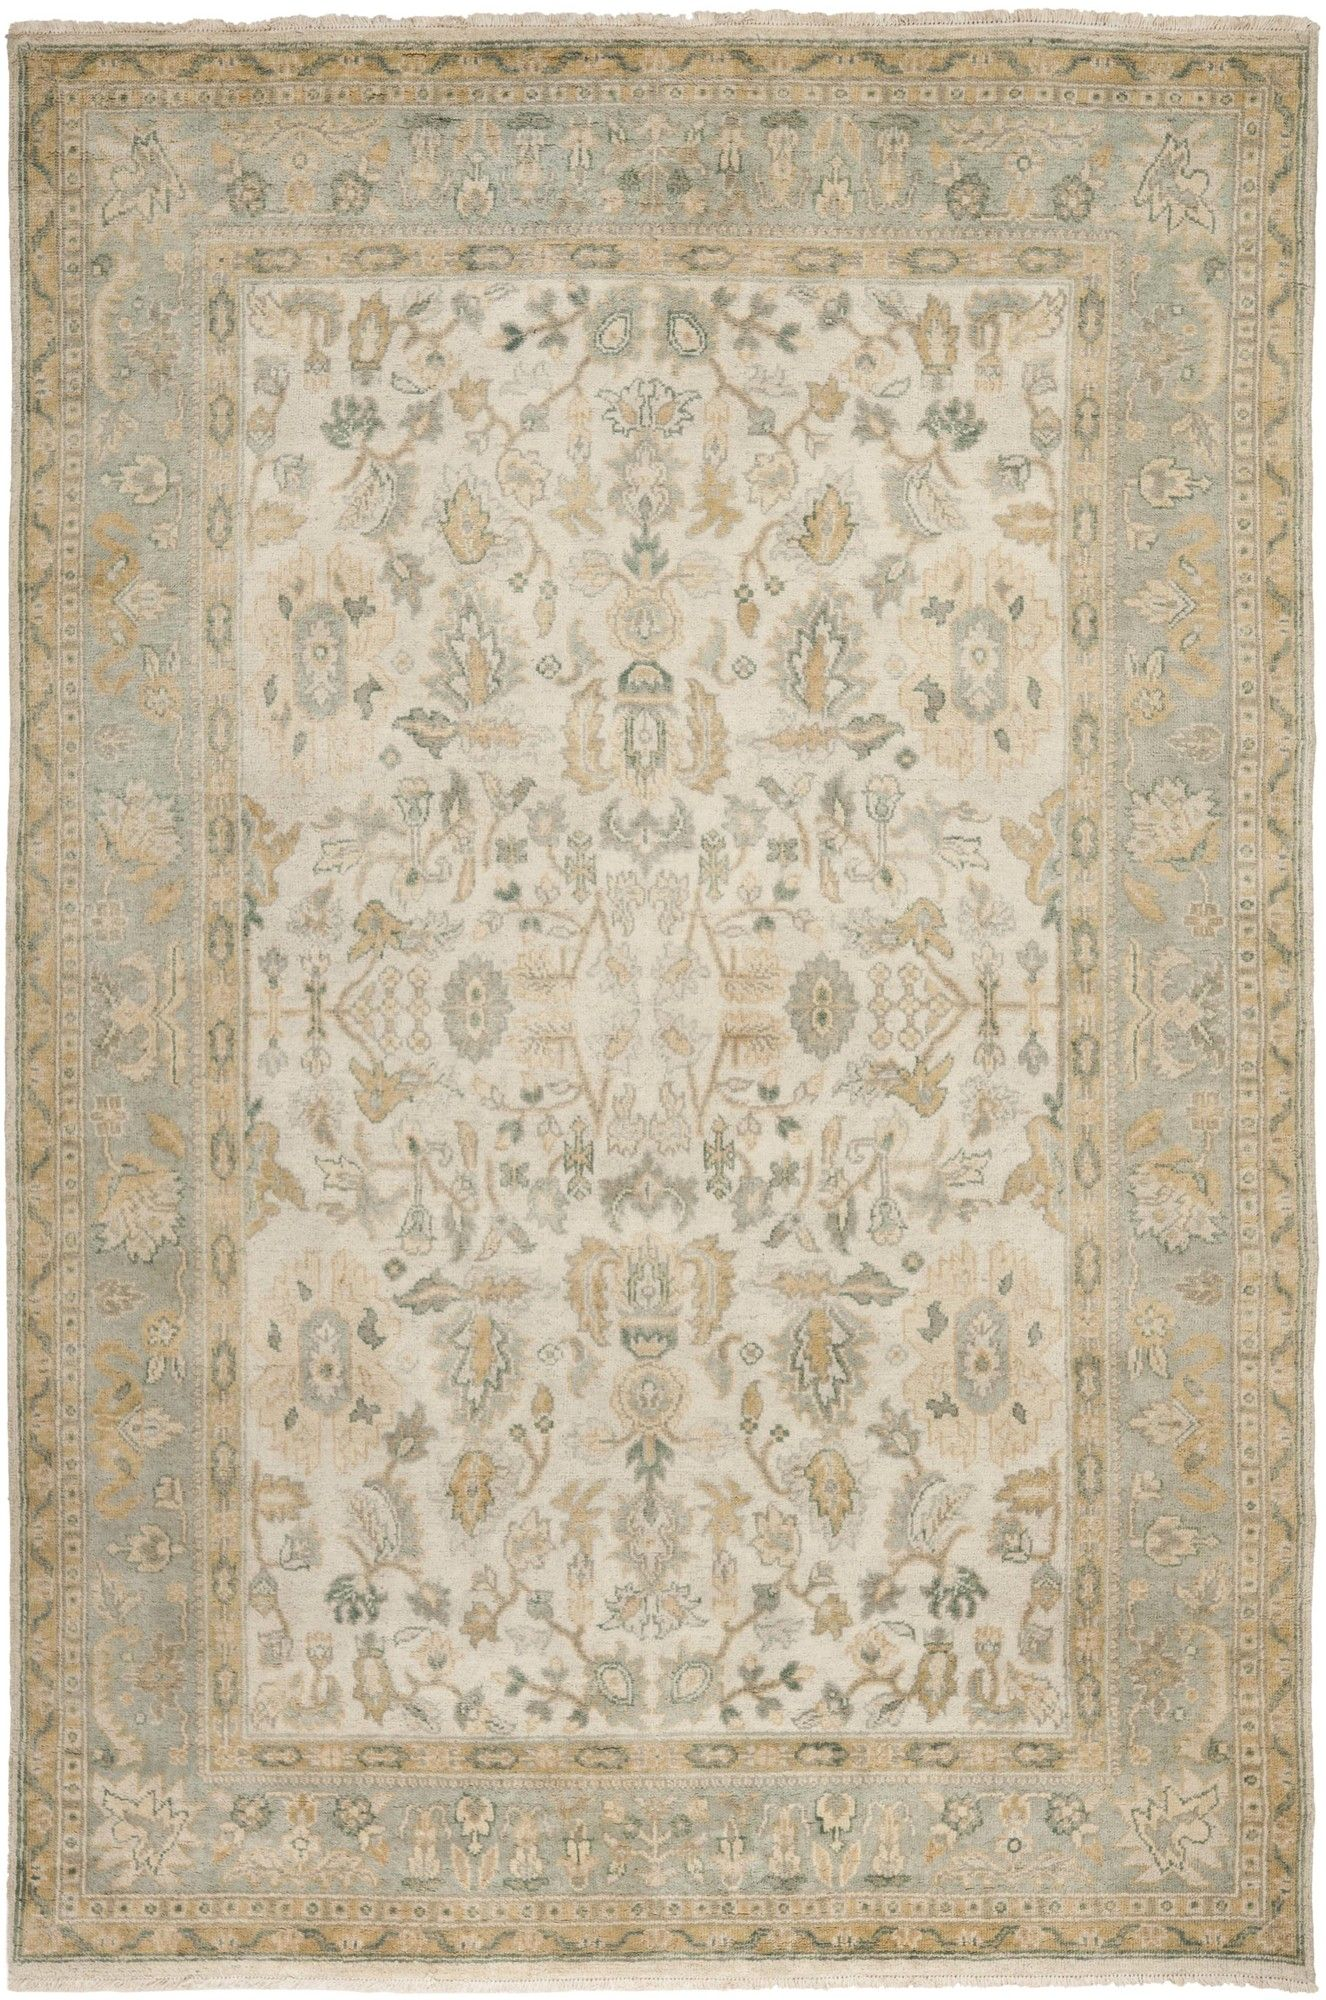 Ralph Lauren Home Harrogate Tan Oriental Area Rug Allmodern Fb Do You Like The Muted Colors In This For Study Rb